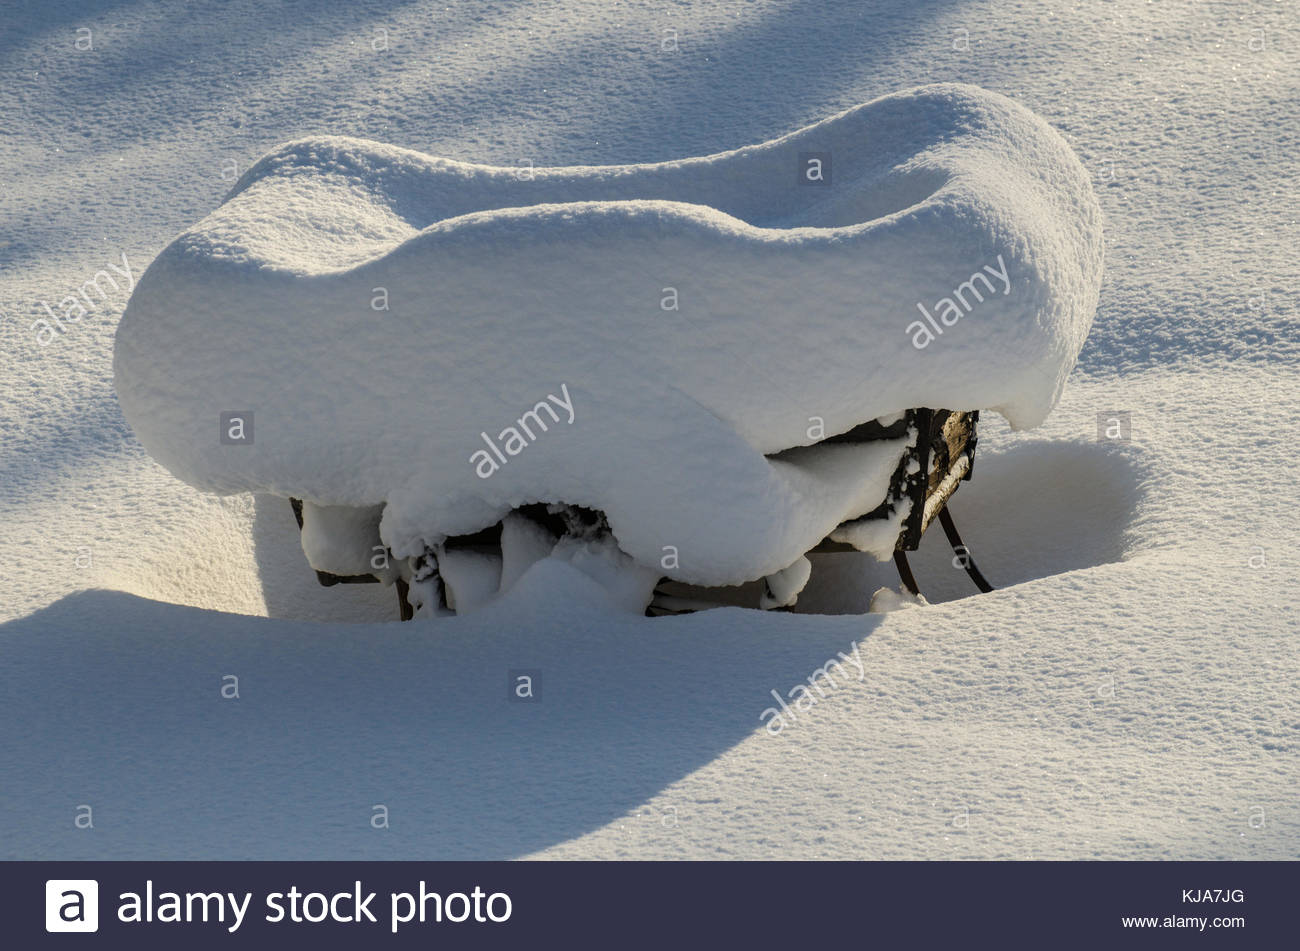 A freezing cold day and the very old wooden wagon is packed with glittering snow. - Stock Image